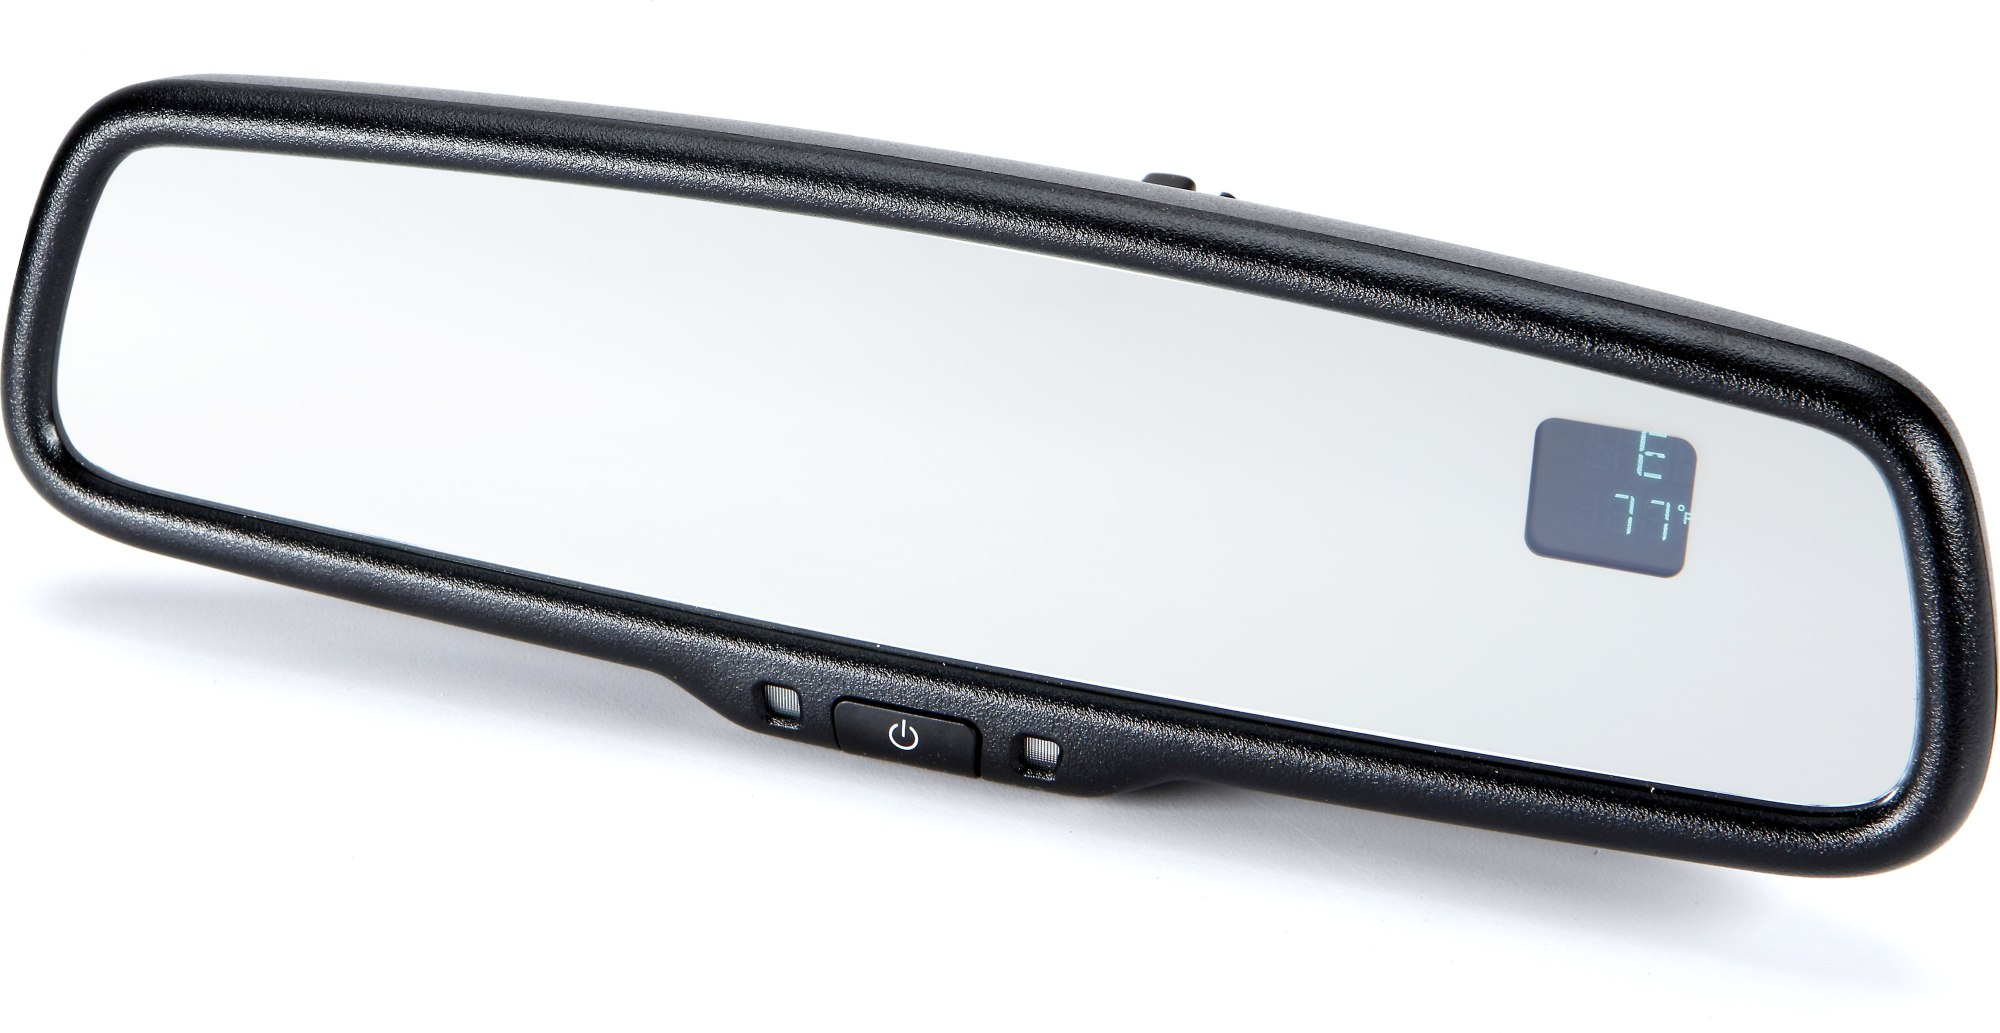 hight resolution of gentex advgen20a auto dimming rear view mirror with temperature compass display at crutchfield